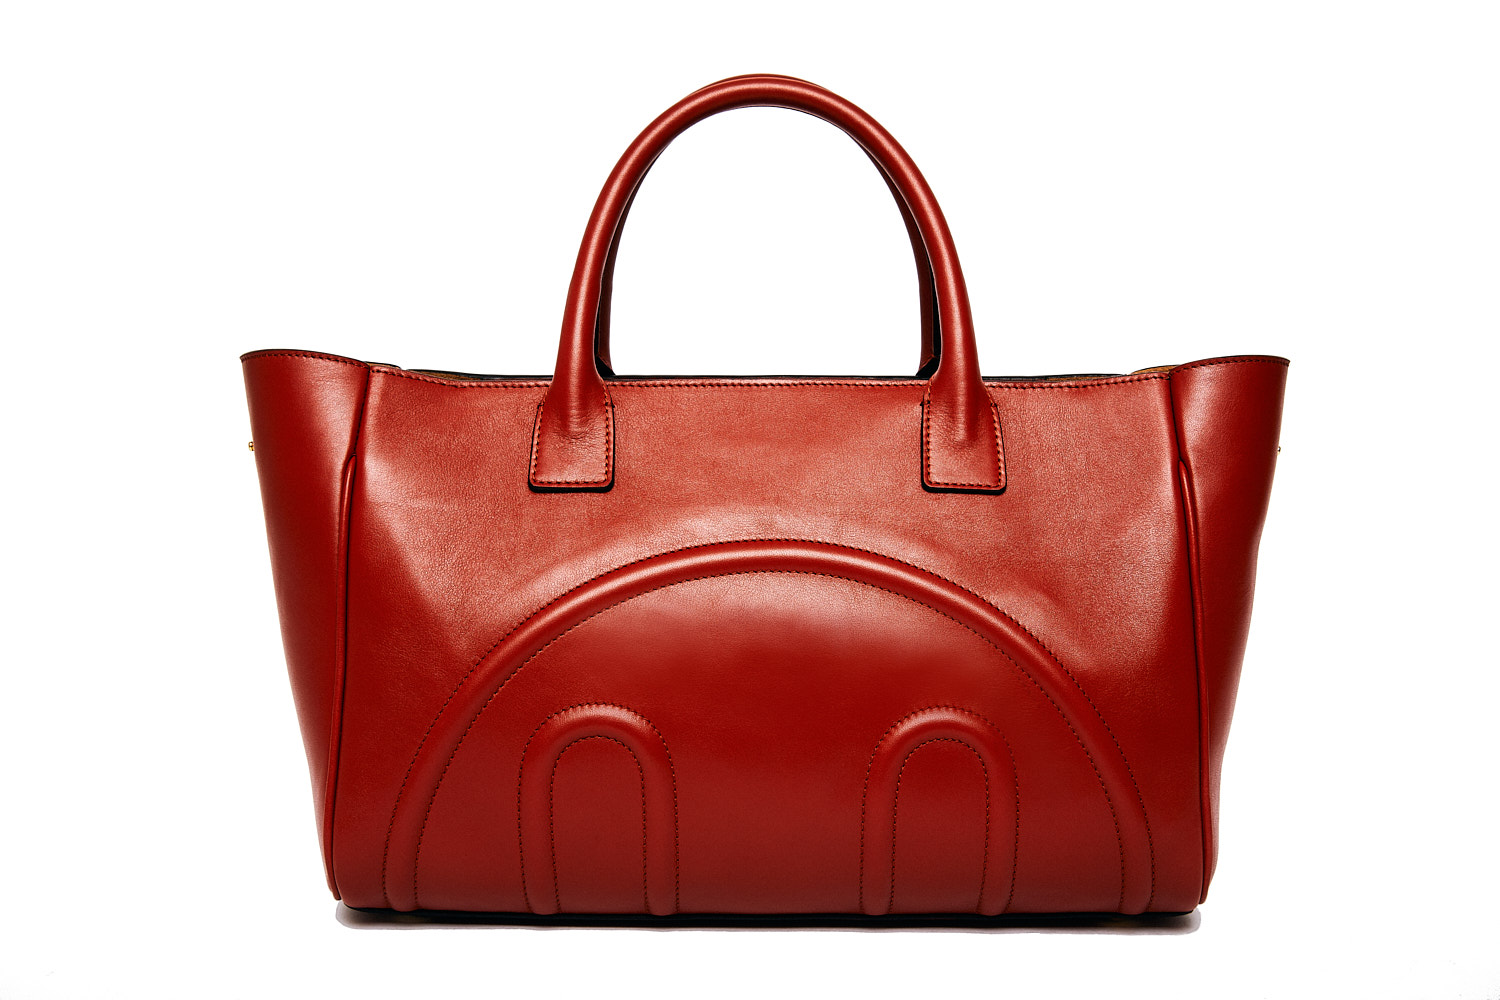 Red leather handbag cut out against a white background